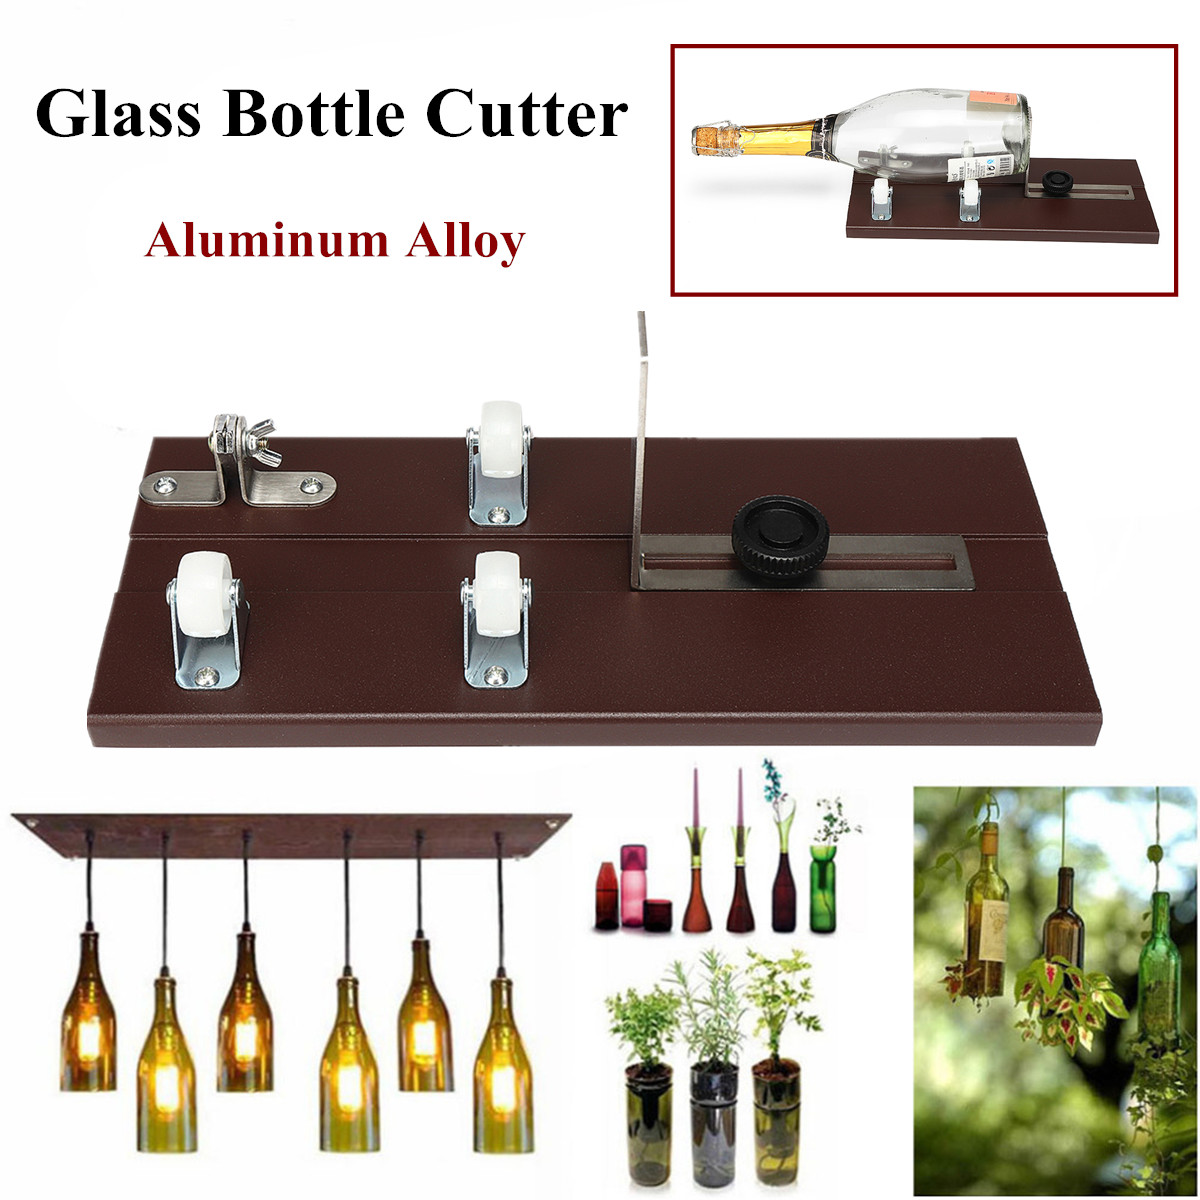 Glass Bottle Cutter Cutting Thickness 3-10mm Aluminum Alloy Cutting Better Accurate Cutting Control DIY Recycle Cutting Tool Kit